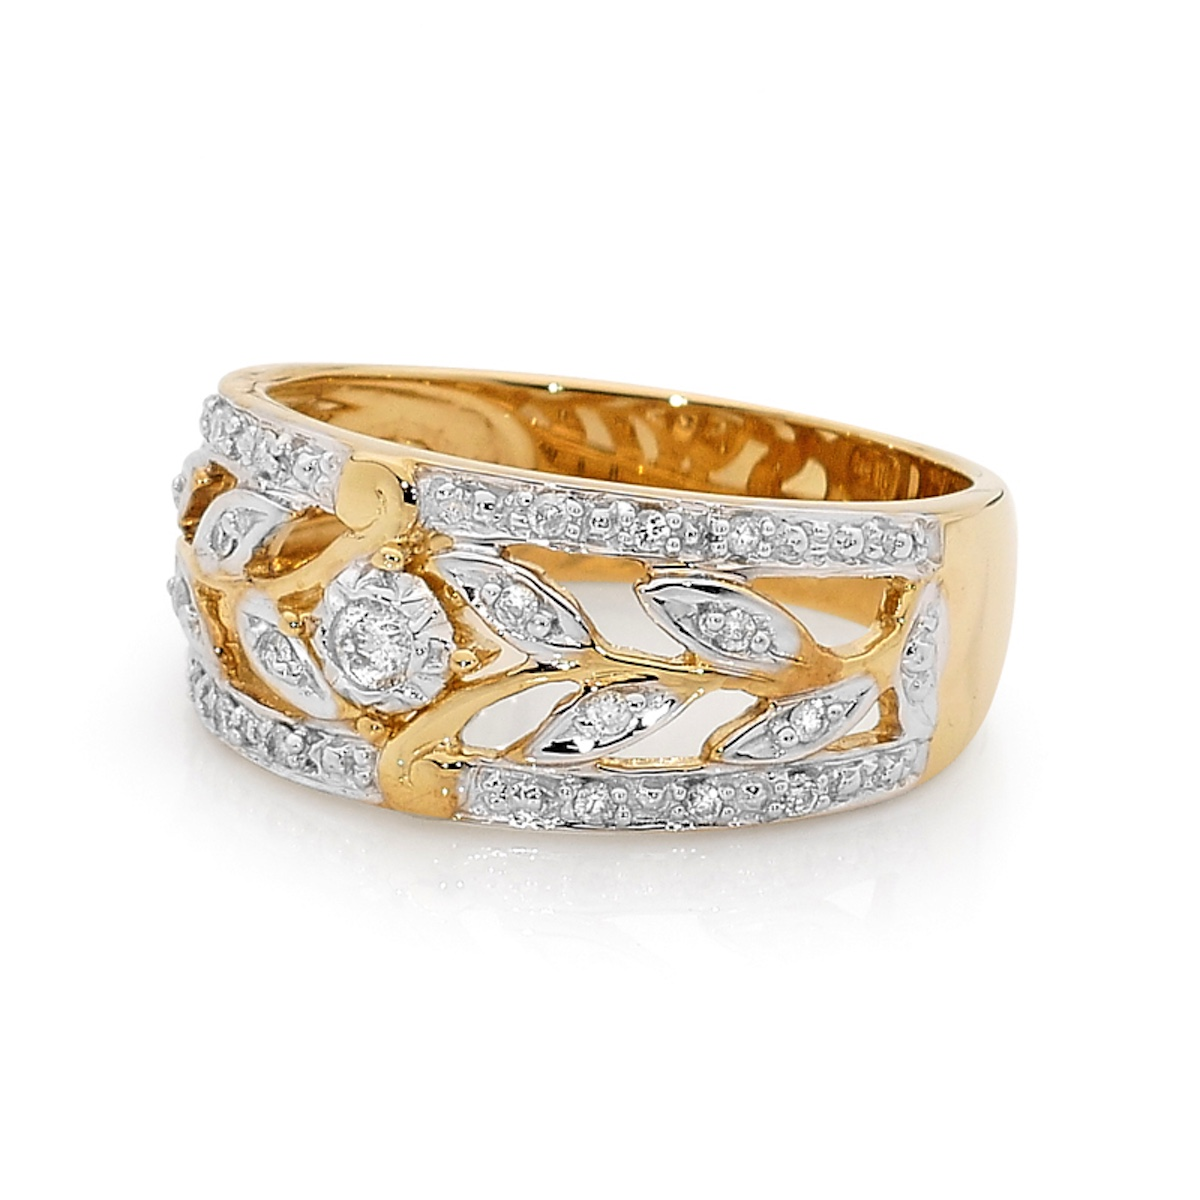 Baroque style Diamond ring